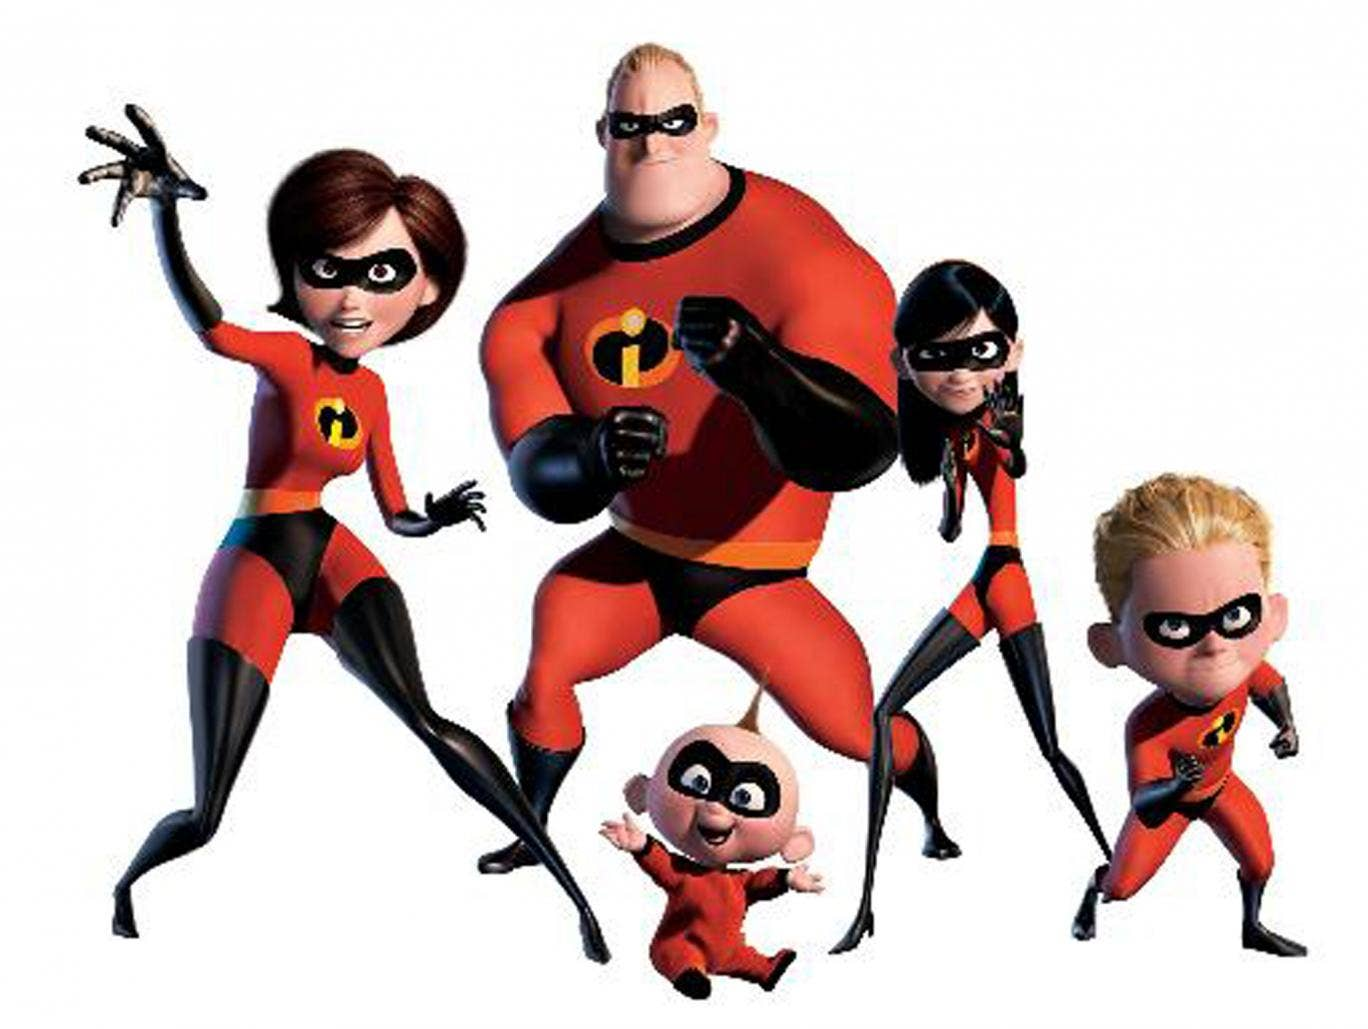 Fighting force with family: The Incredibles